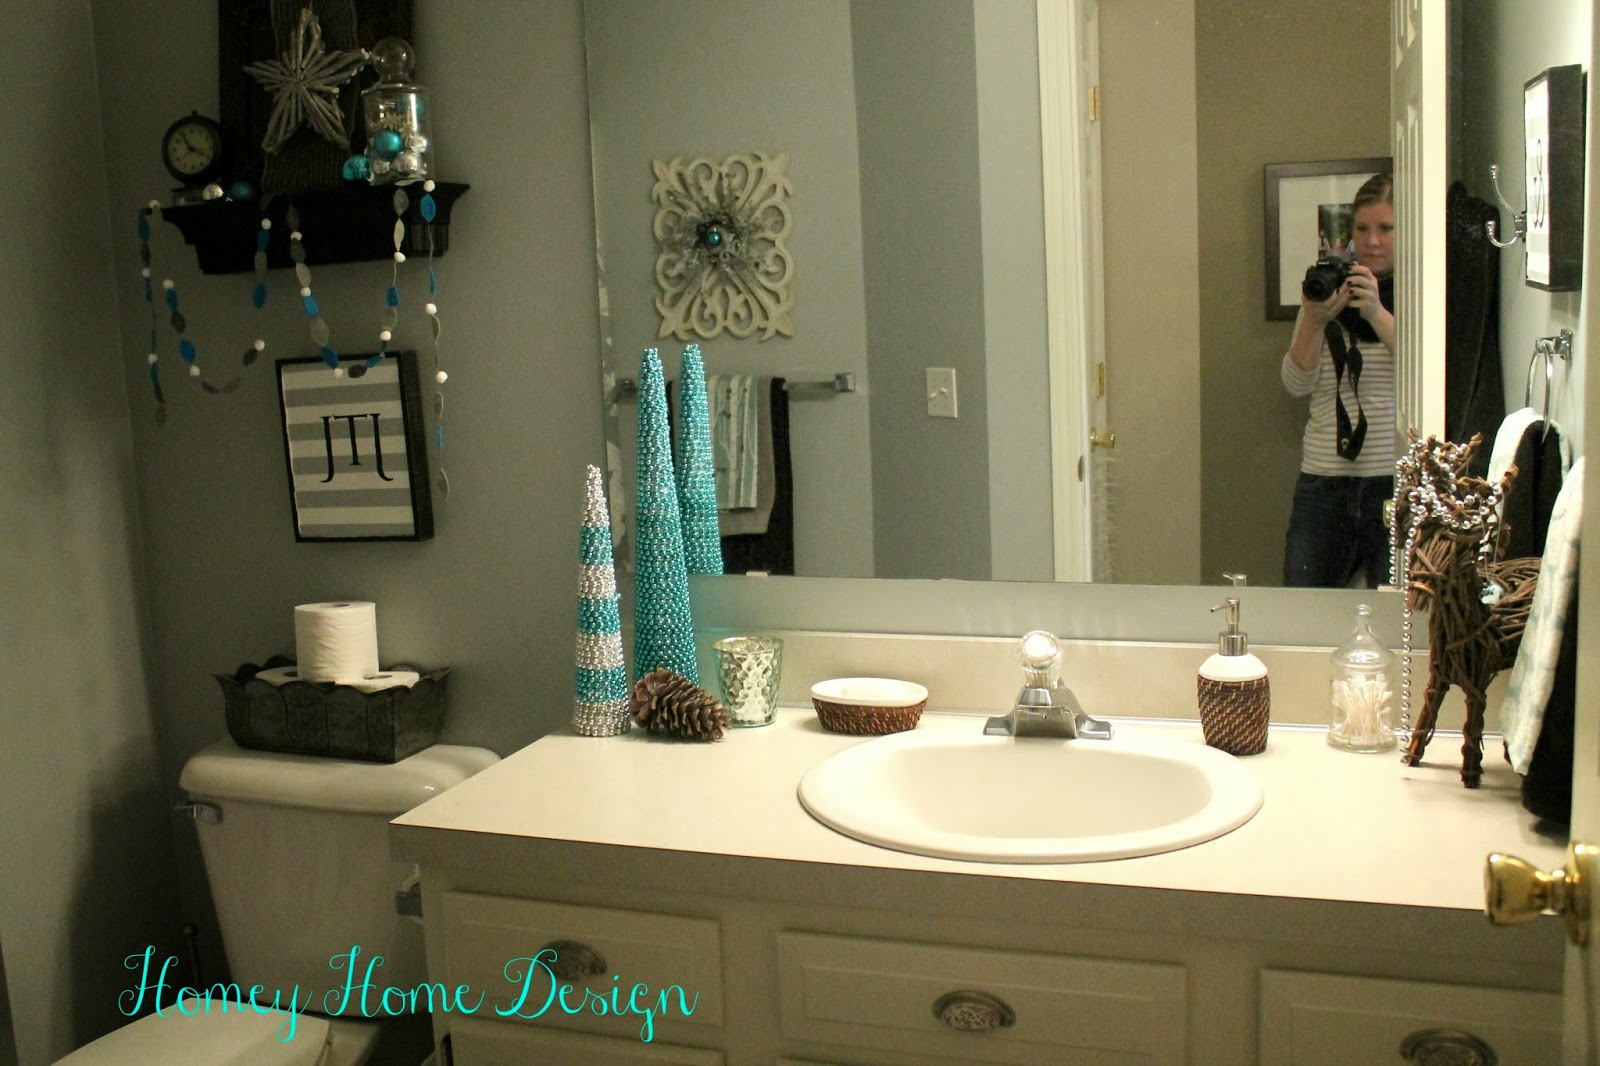 Homey home design bathroom christmas ideas for Ideas for bathroom decorating themes